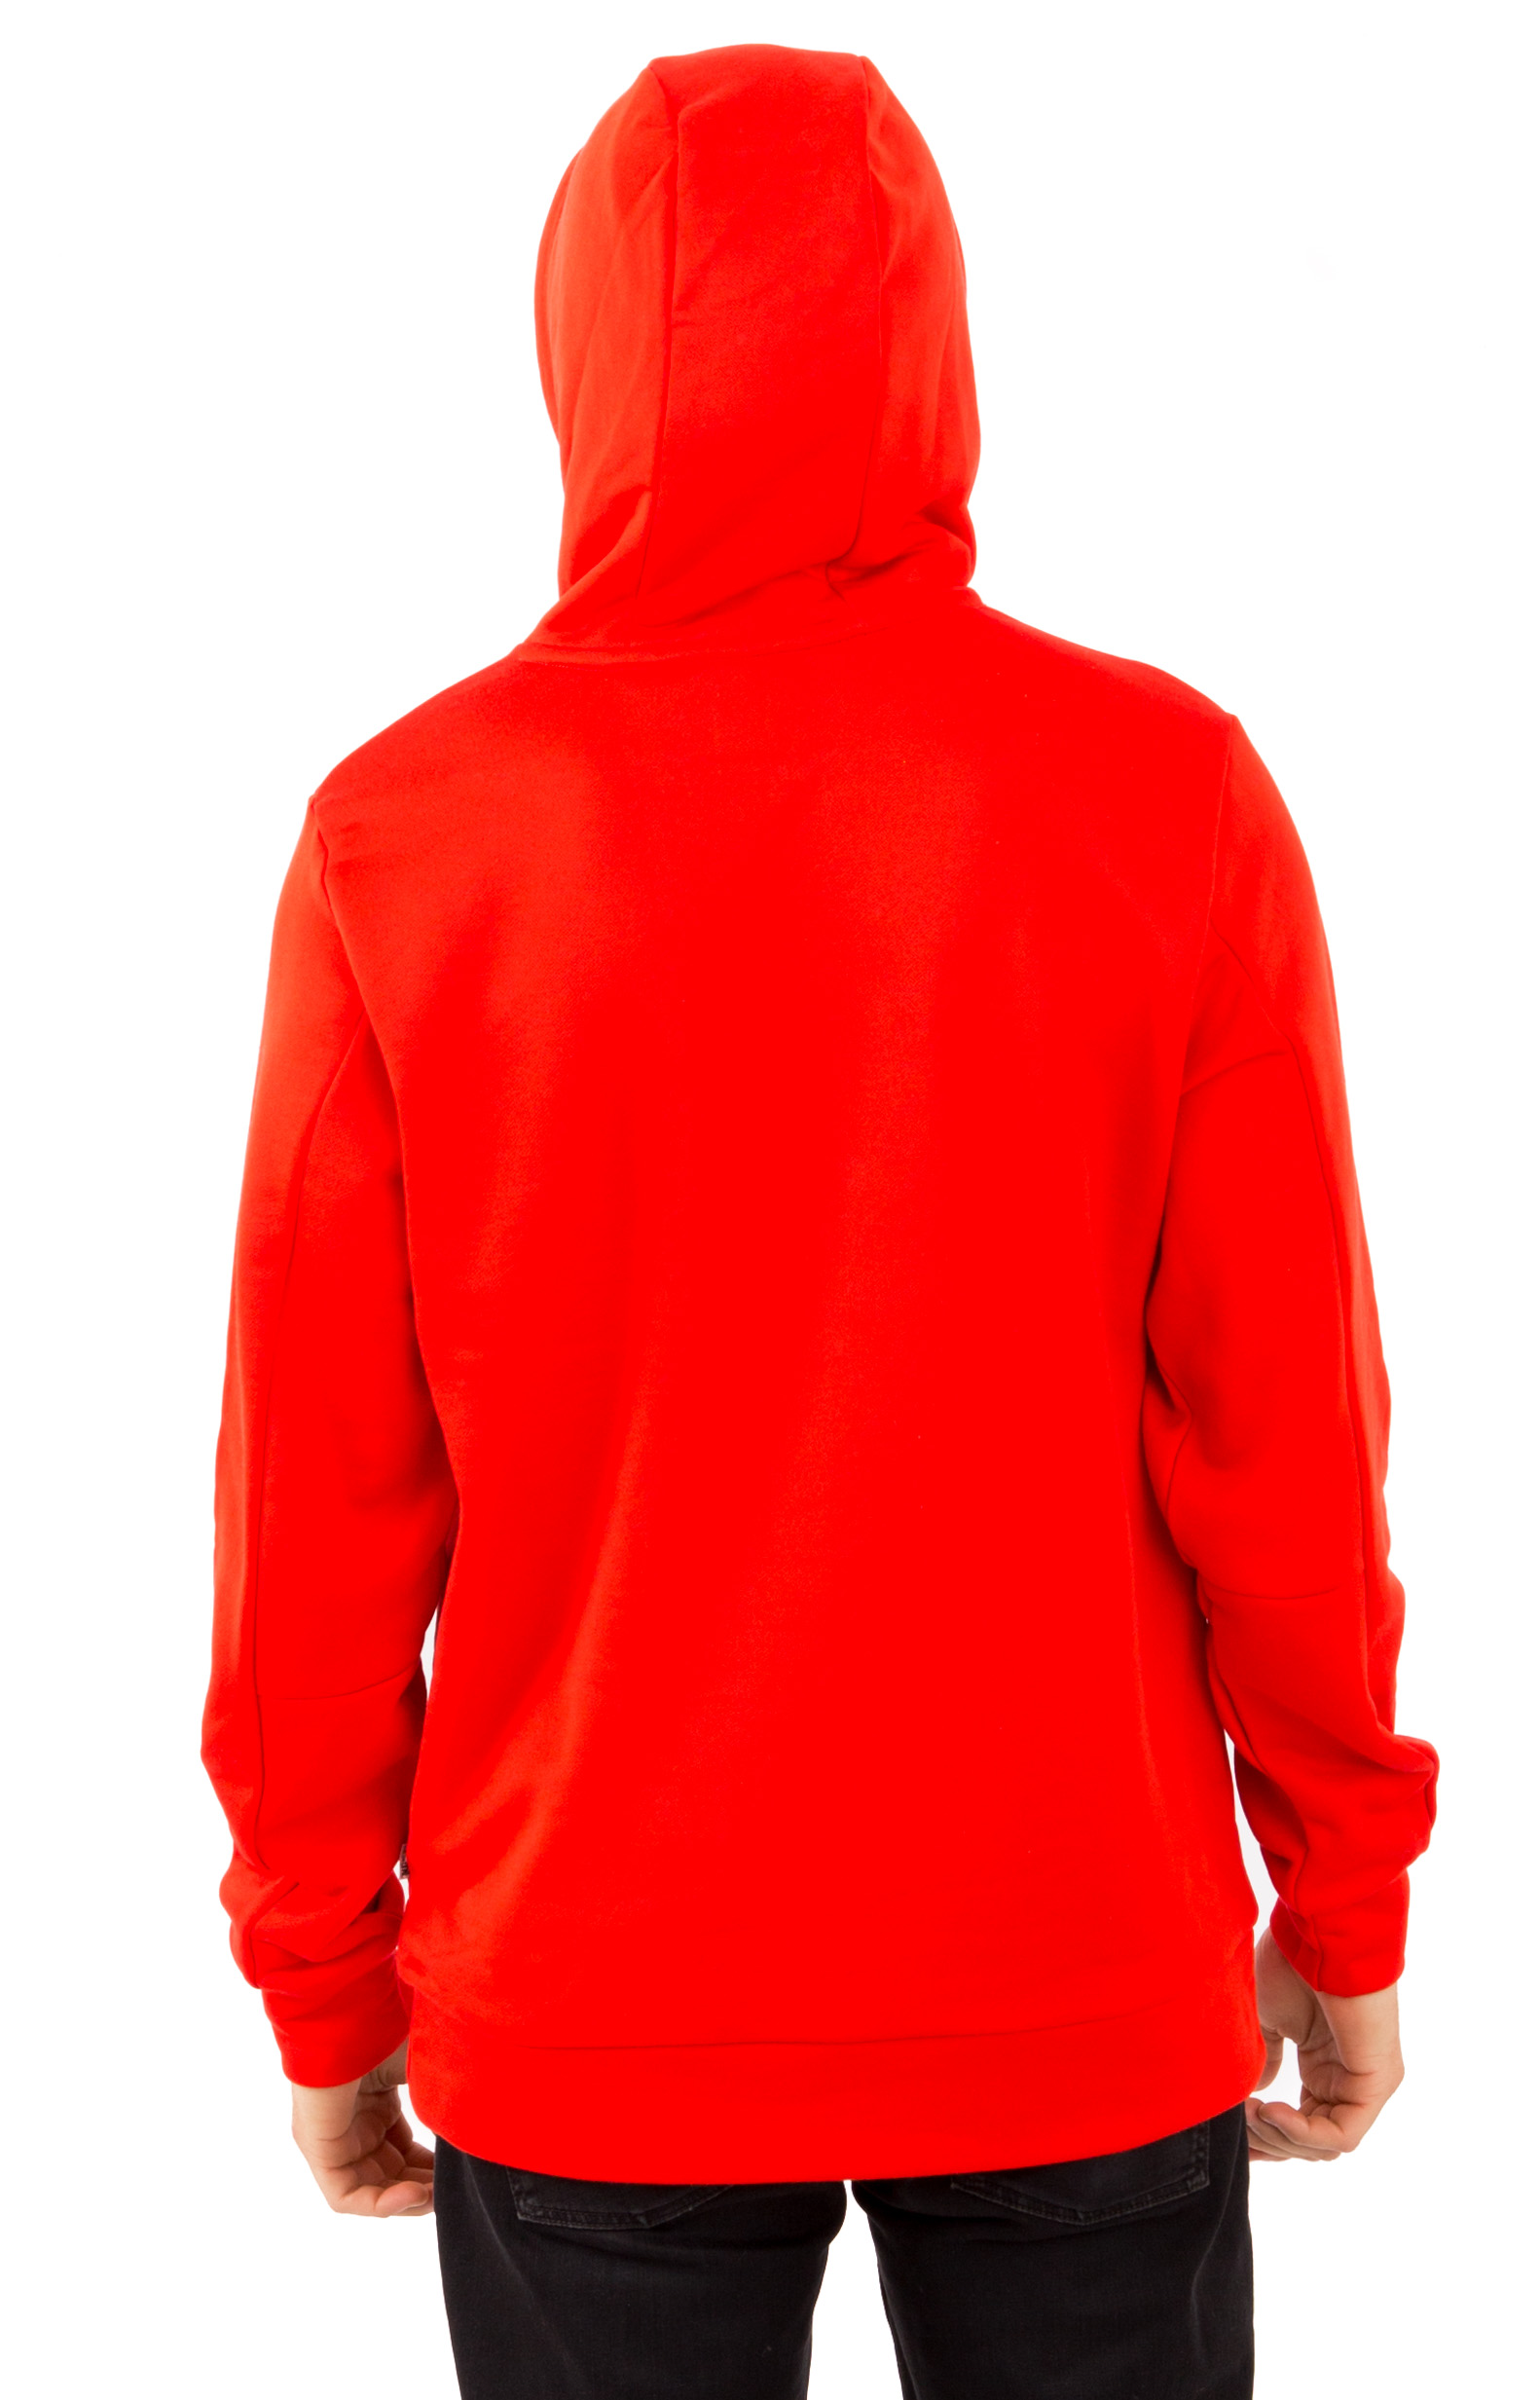 Fame Block Press Pullover Hoodie - Red 3